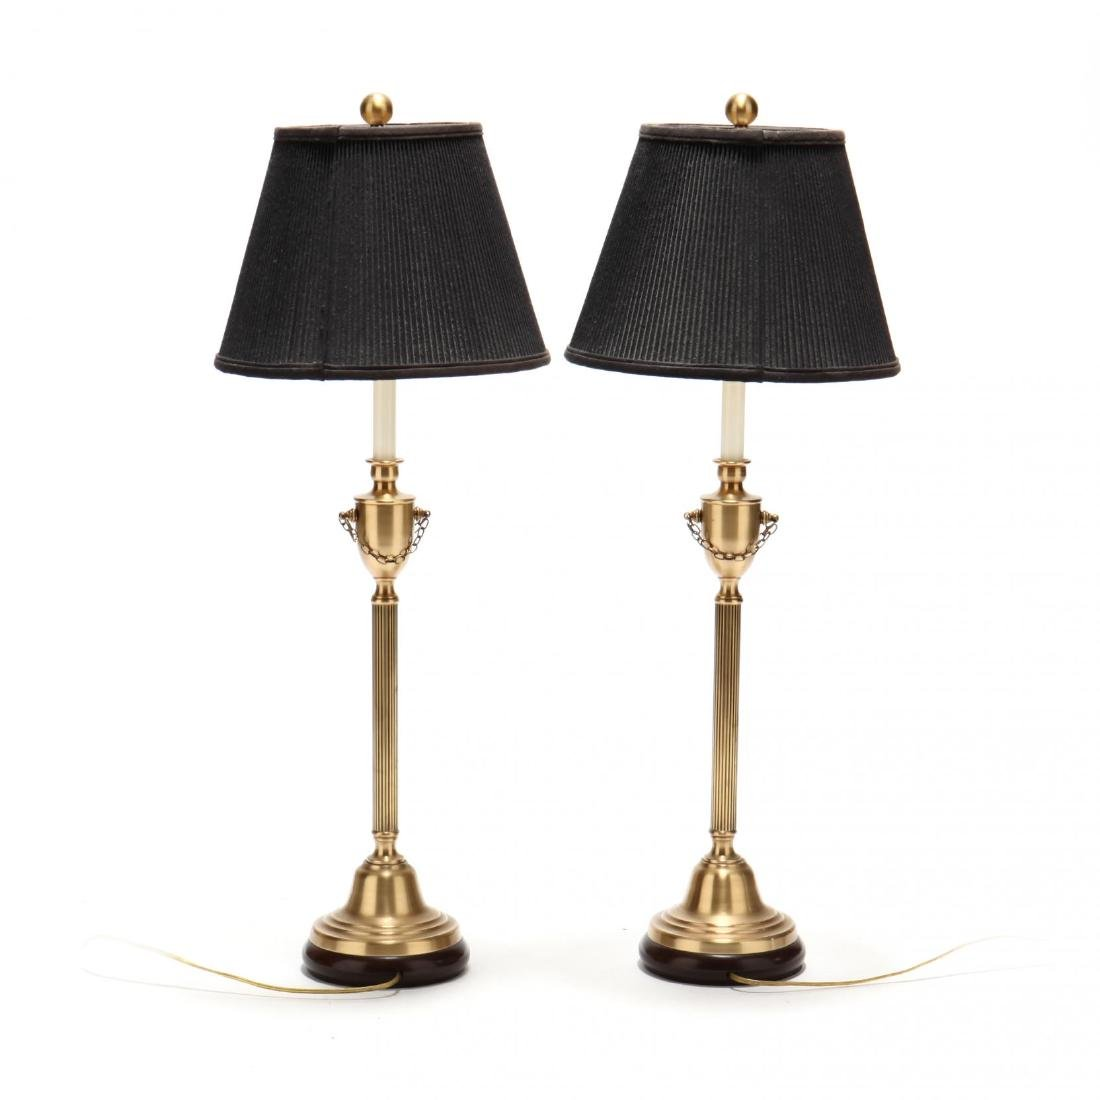 Pair of Neoclassical Style Brass Table Lamps - 2